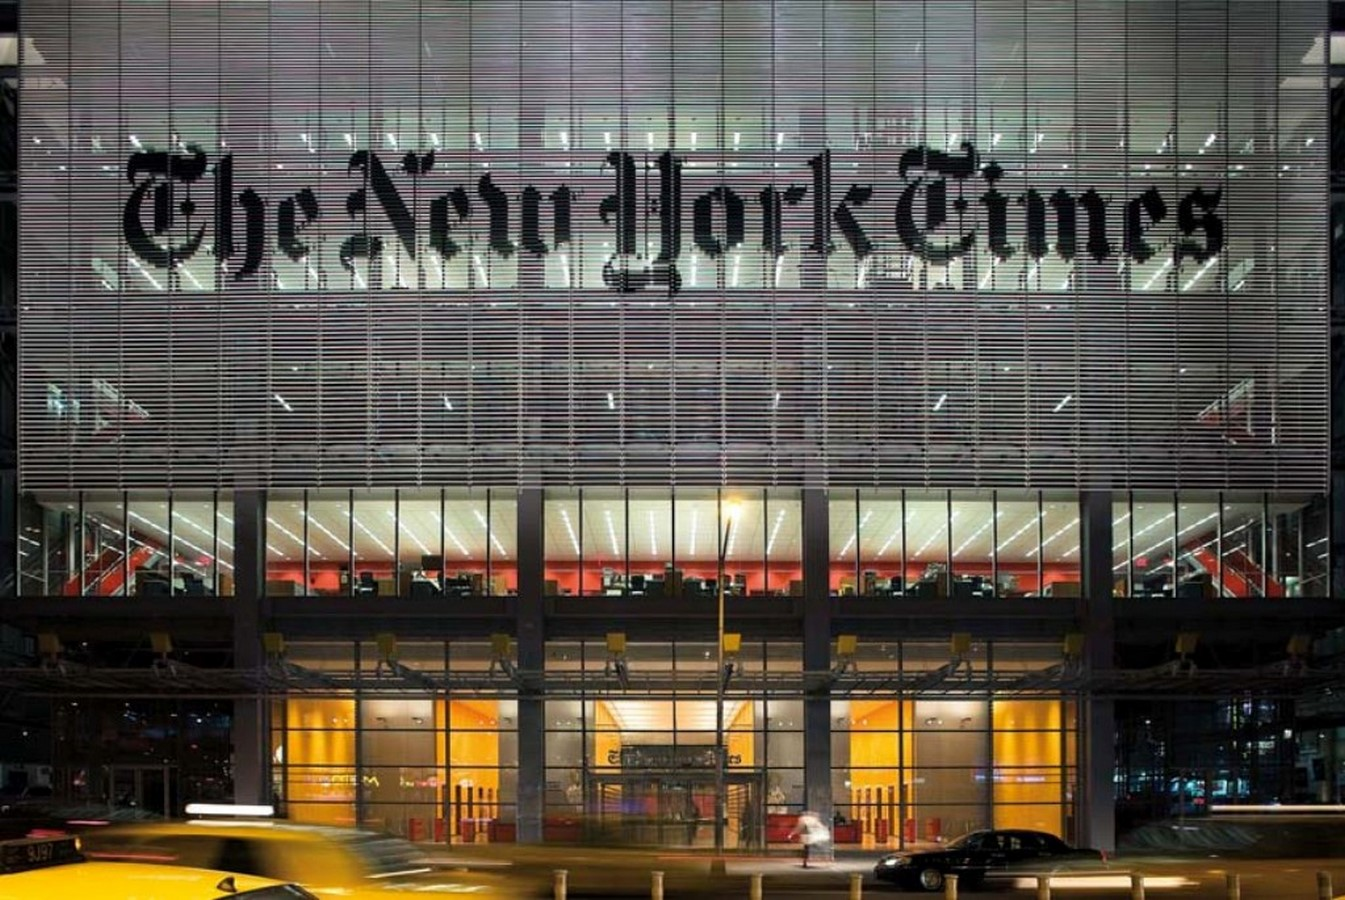 The New York Times Building by Renzo Piano: Inspired by the culture of transparency - Sheet1